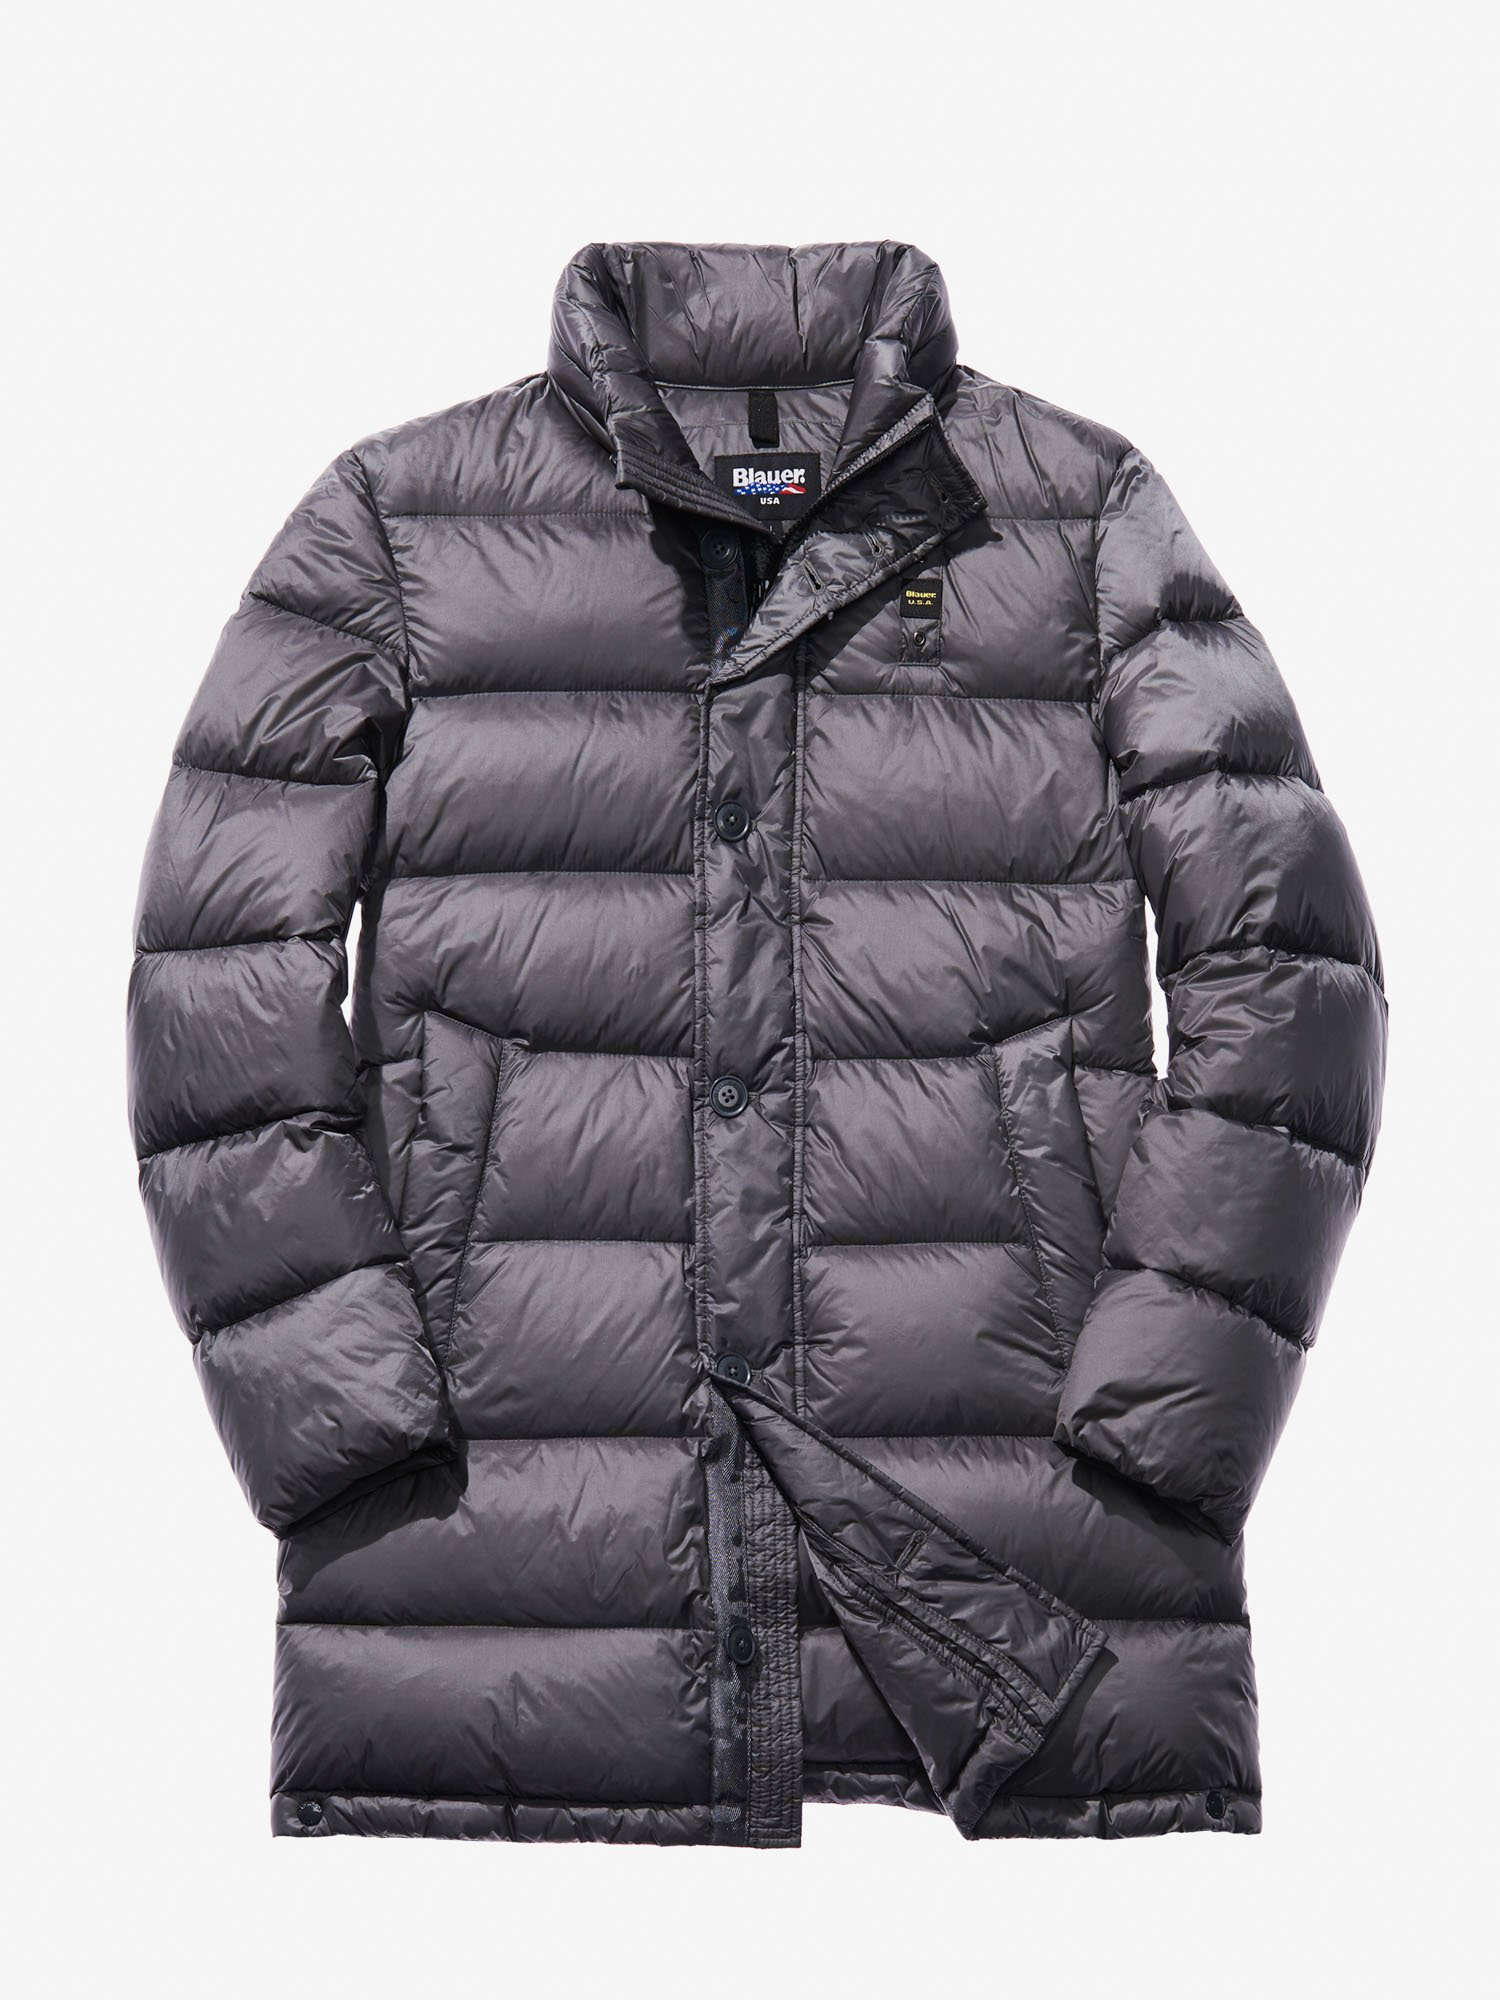 Blauer - DANIELE DOWN COAT - Dark Grey - Blauer